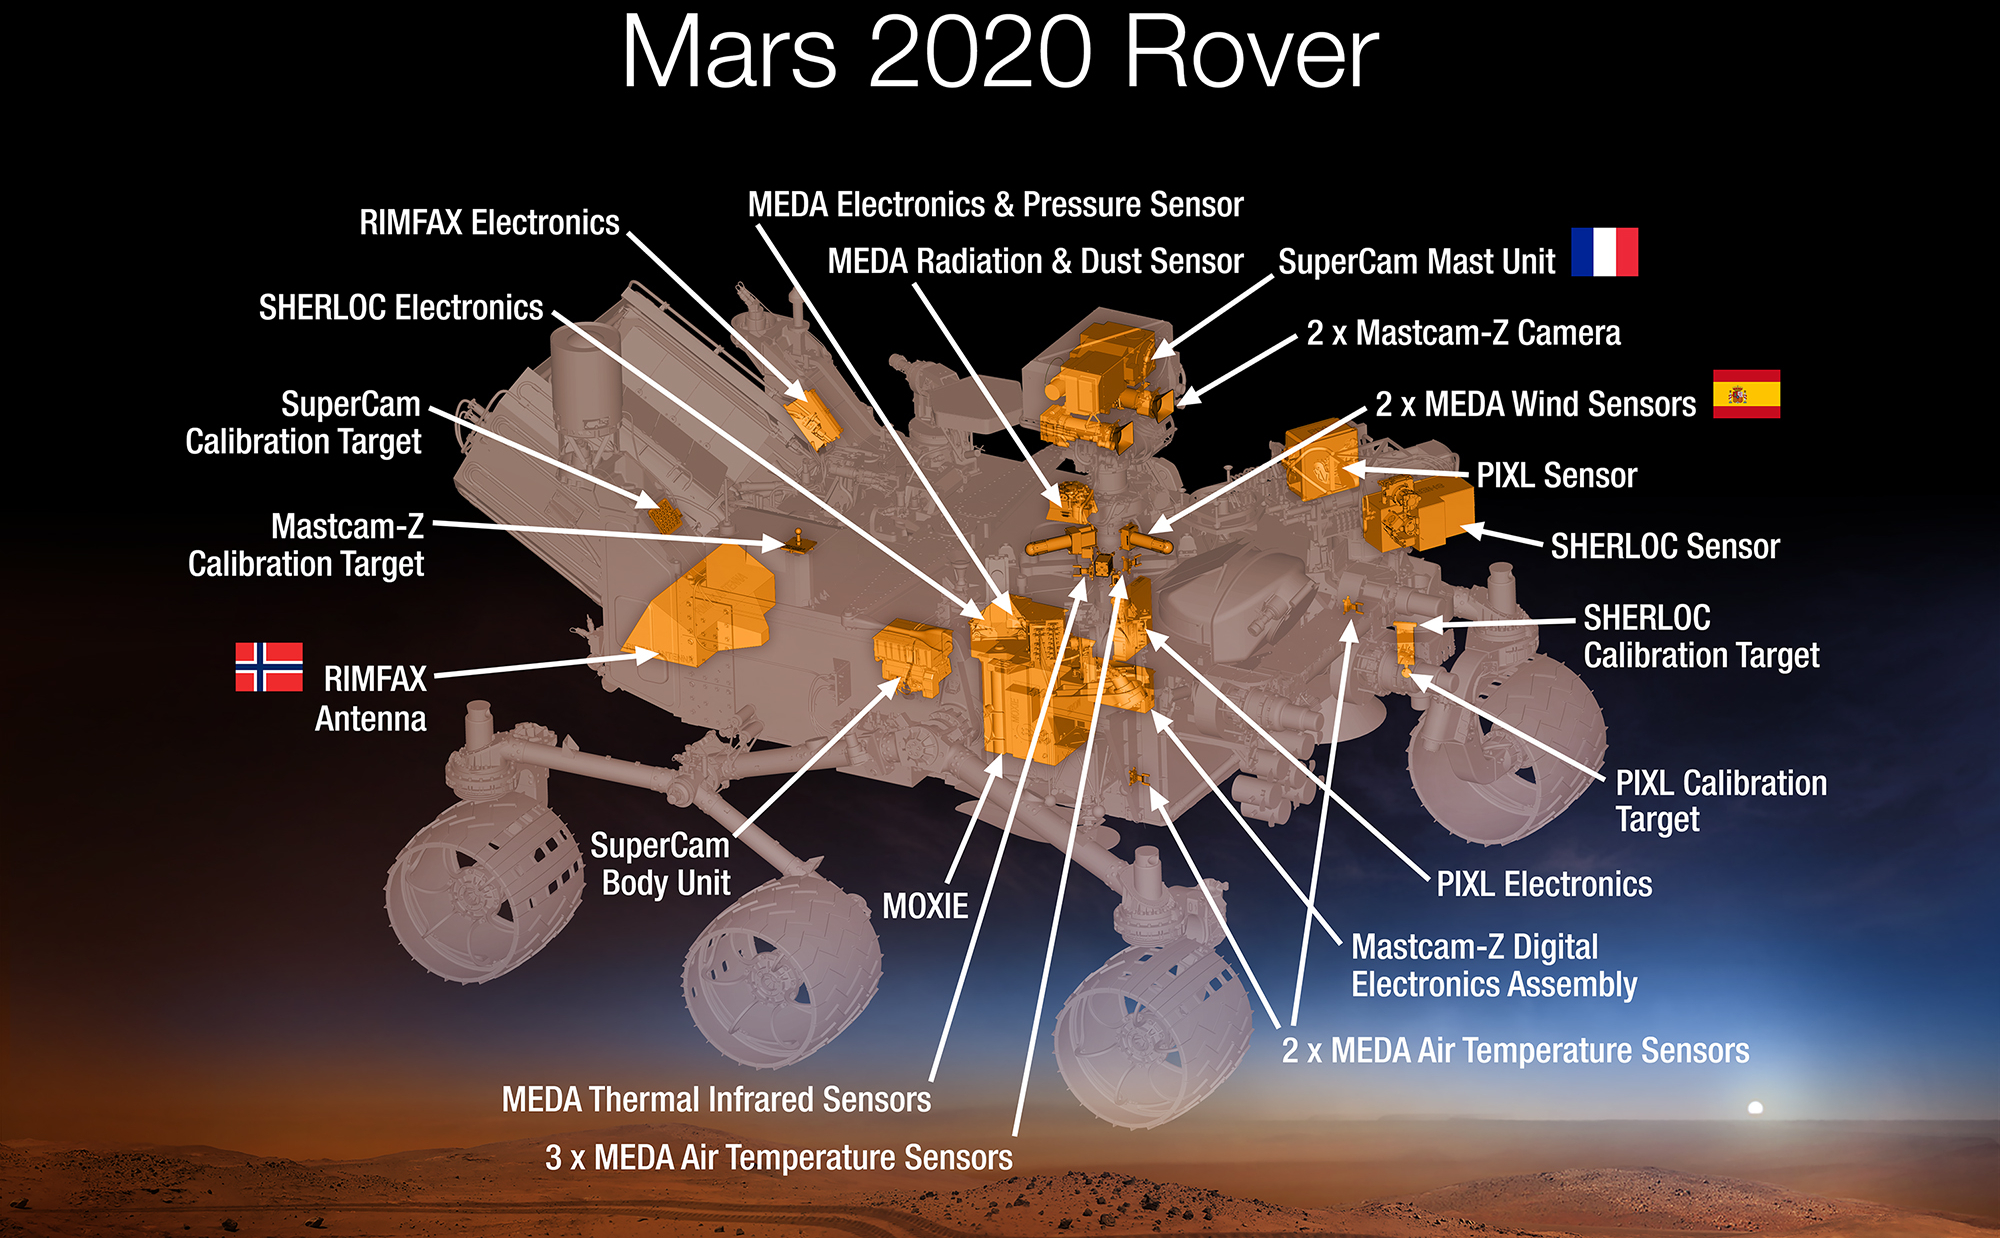 Mars_Mars2020Rover_ScienceInstruments_PIA19672-full2.jpg